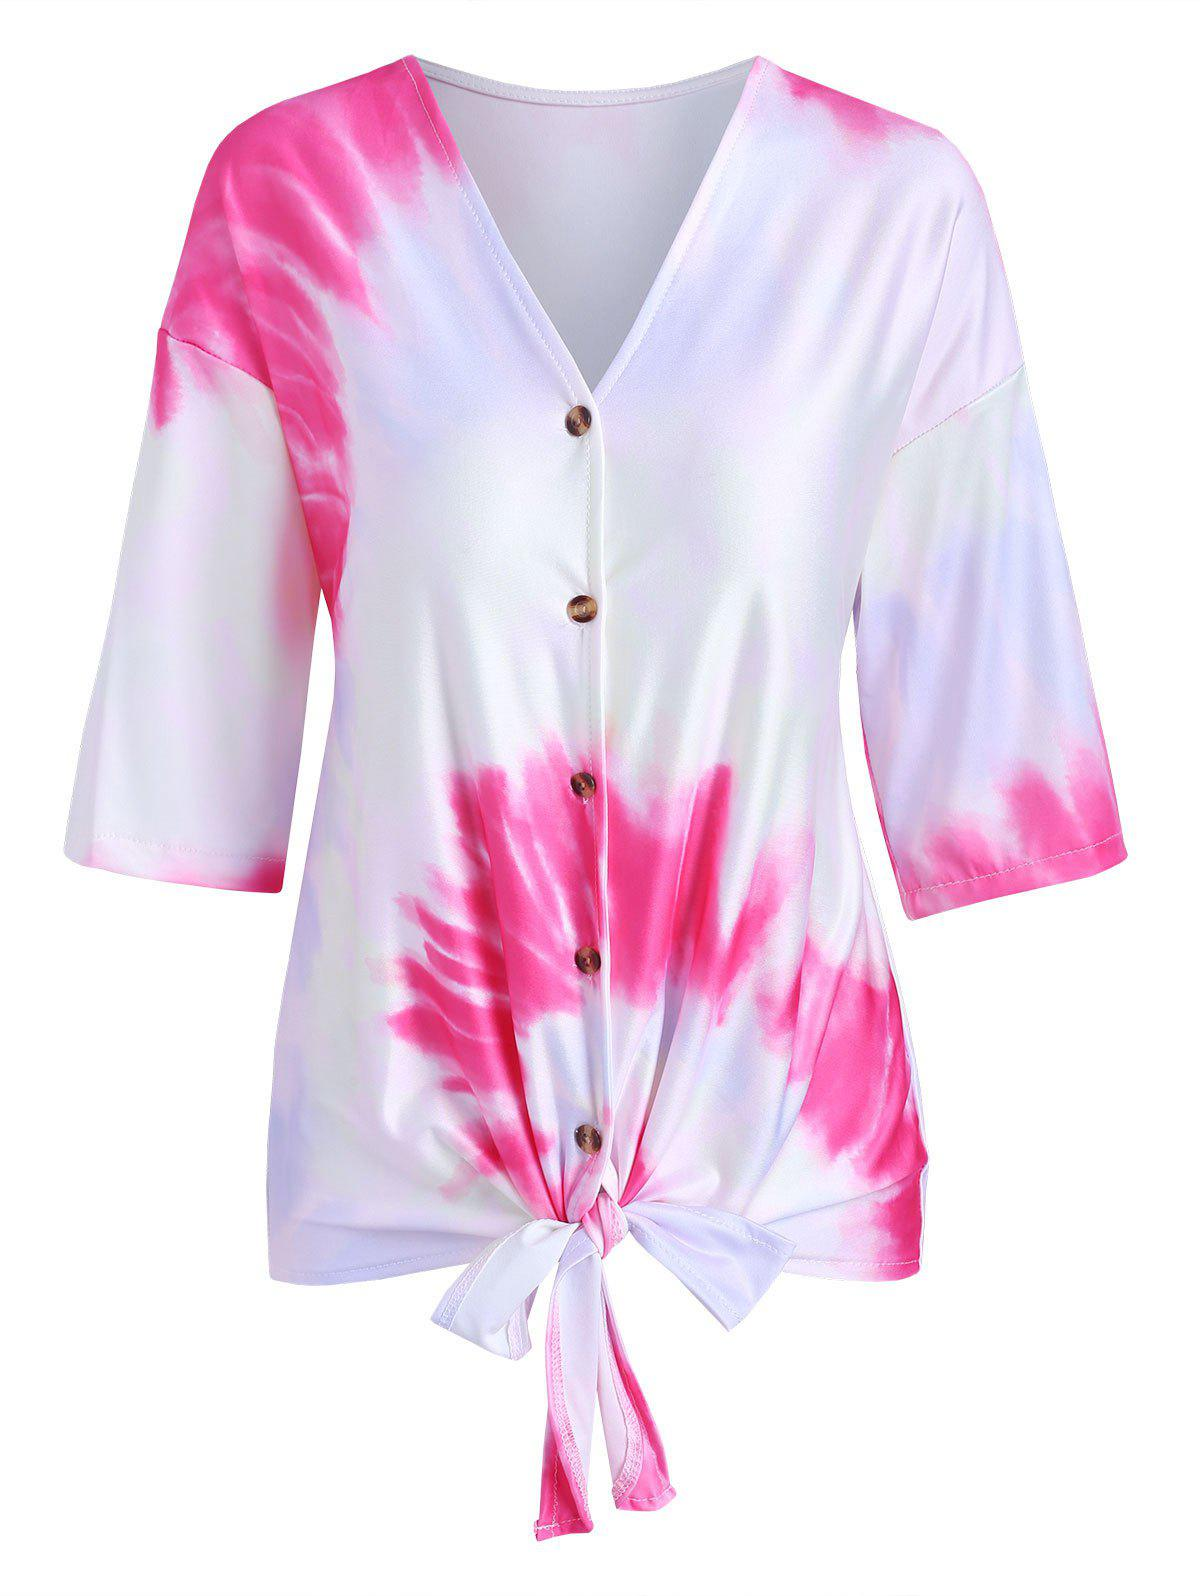 Best Tie Dye Print Knotted Button Up T-shirt